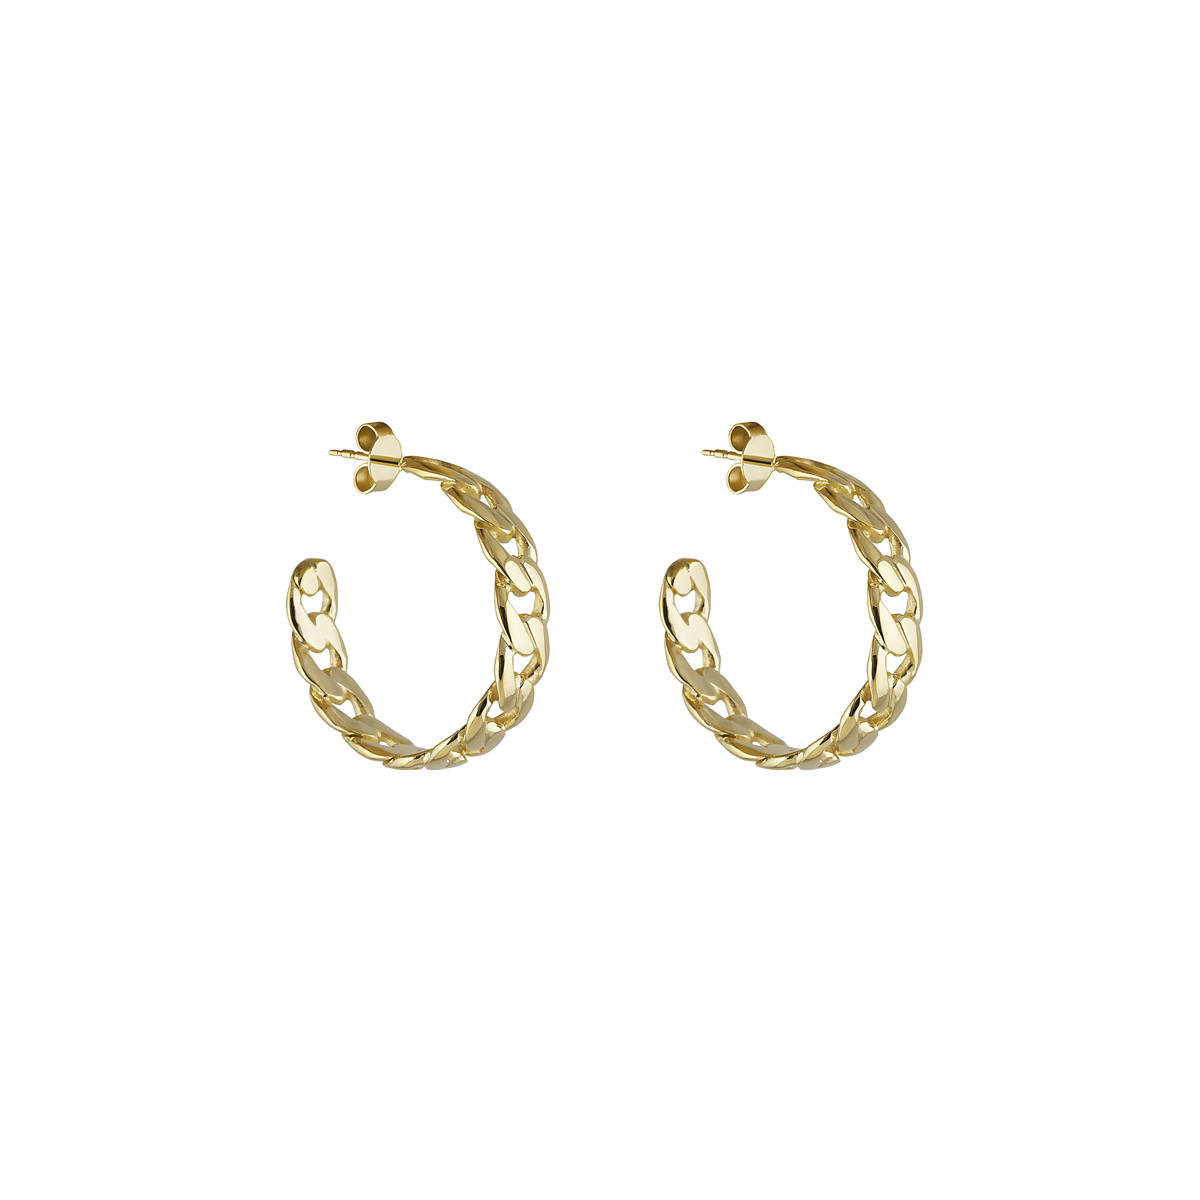 BIG LINK HOOPS GOLD in the group EARRINGS at EMMA ISRAELSSON (ear087)